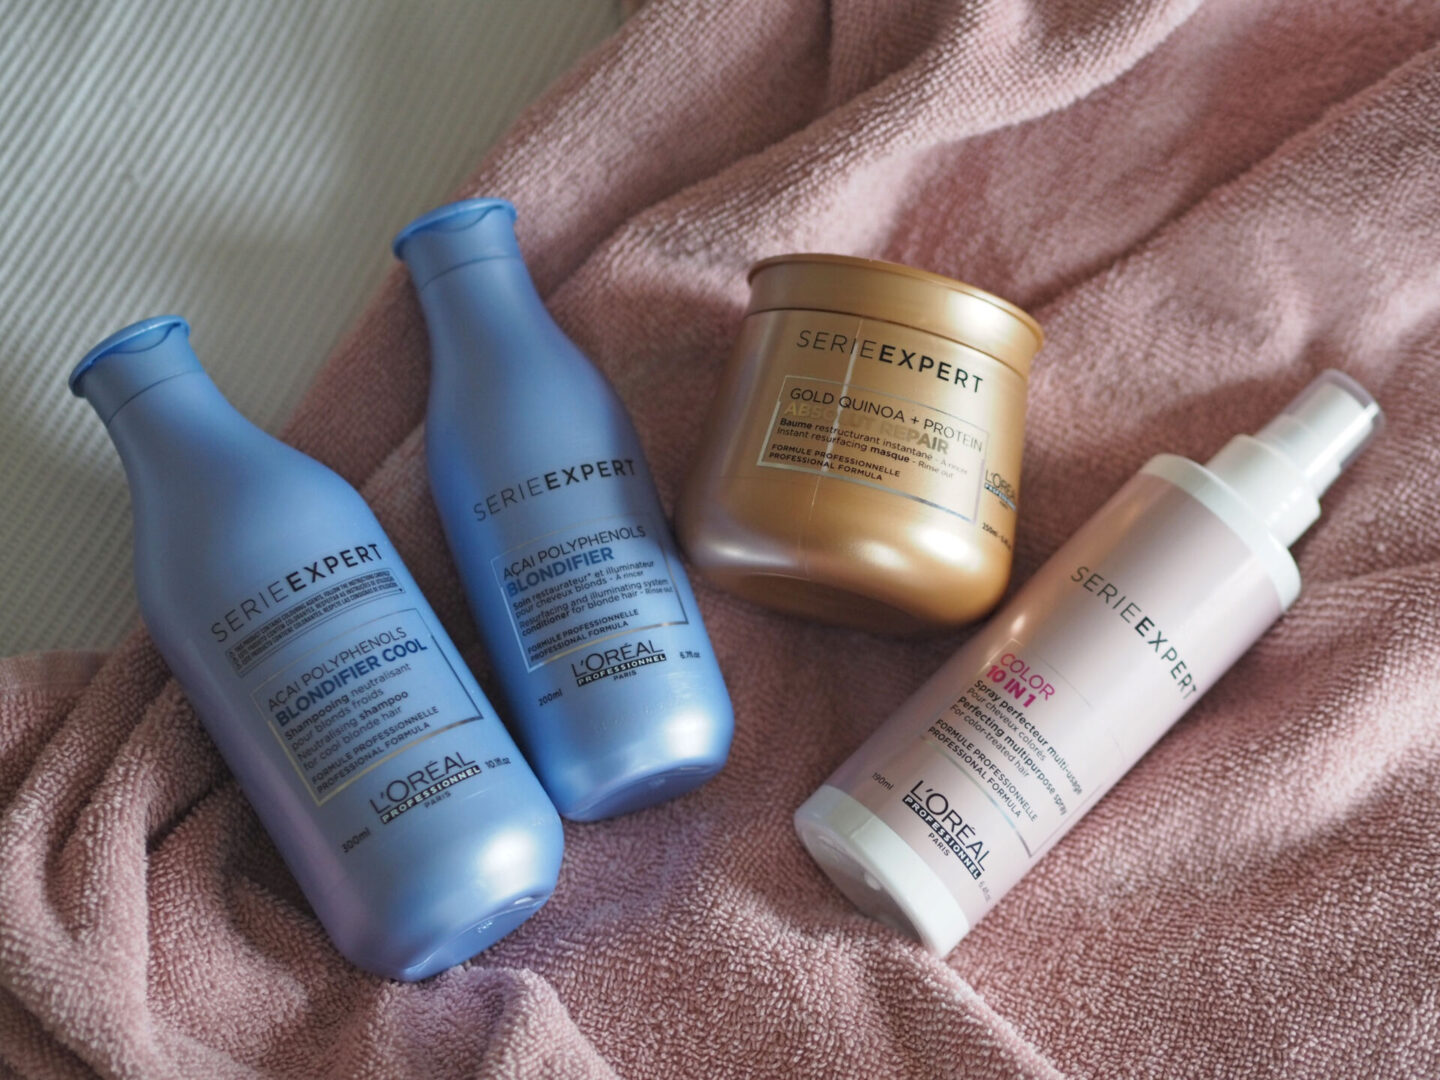 L'Oréal Professional Expert Serie haircare range for bleached damaged hair